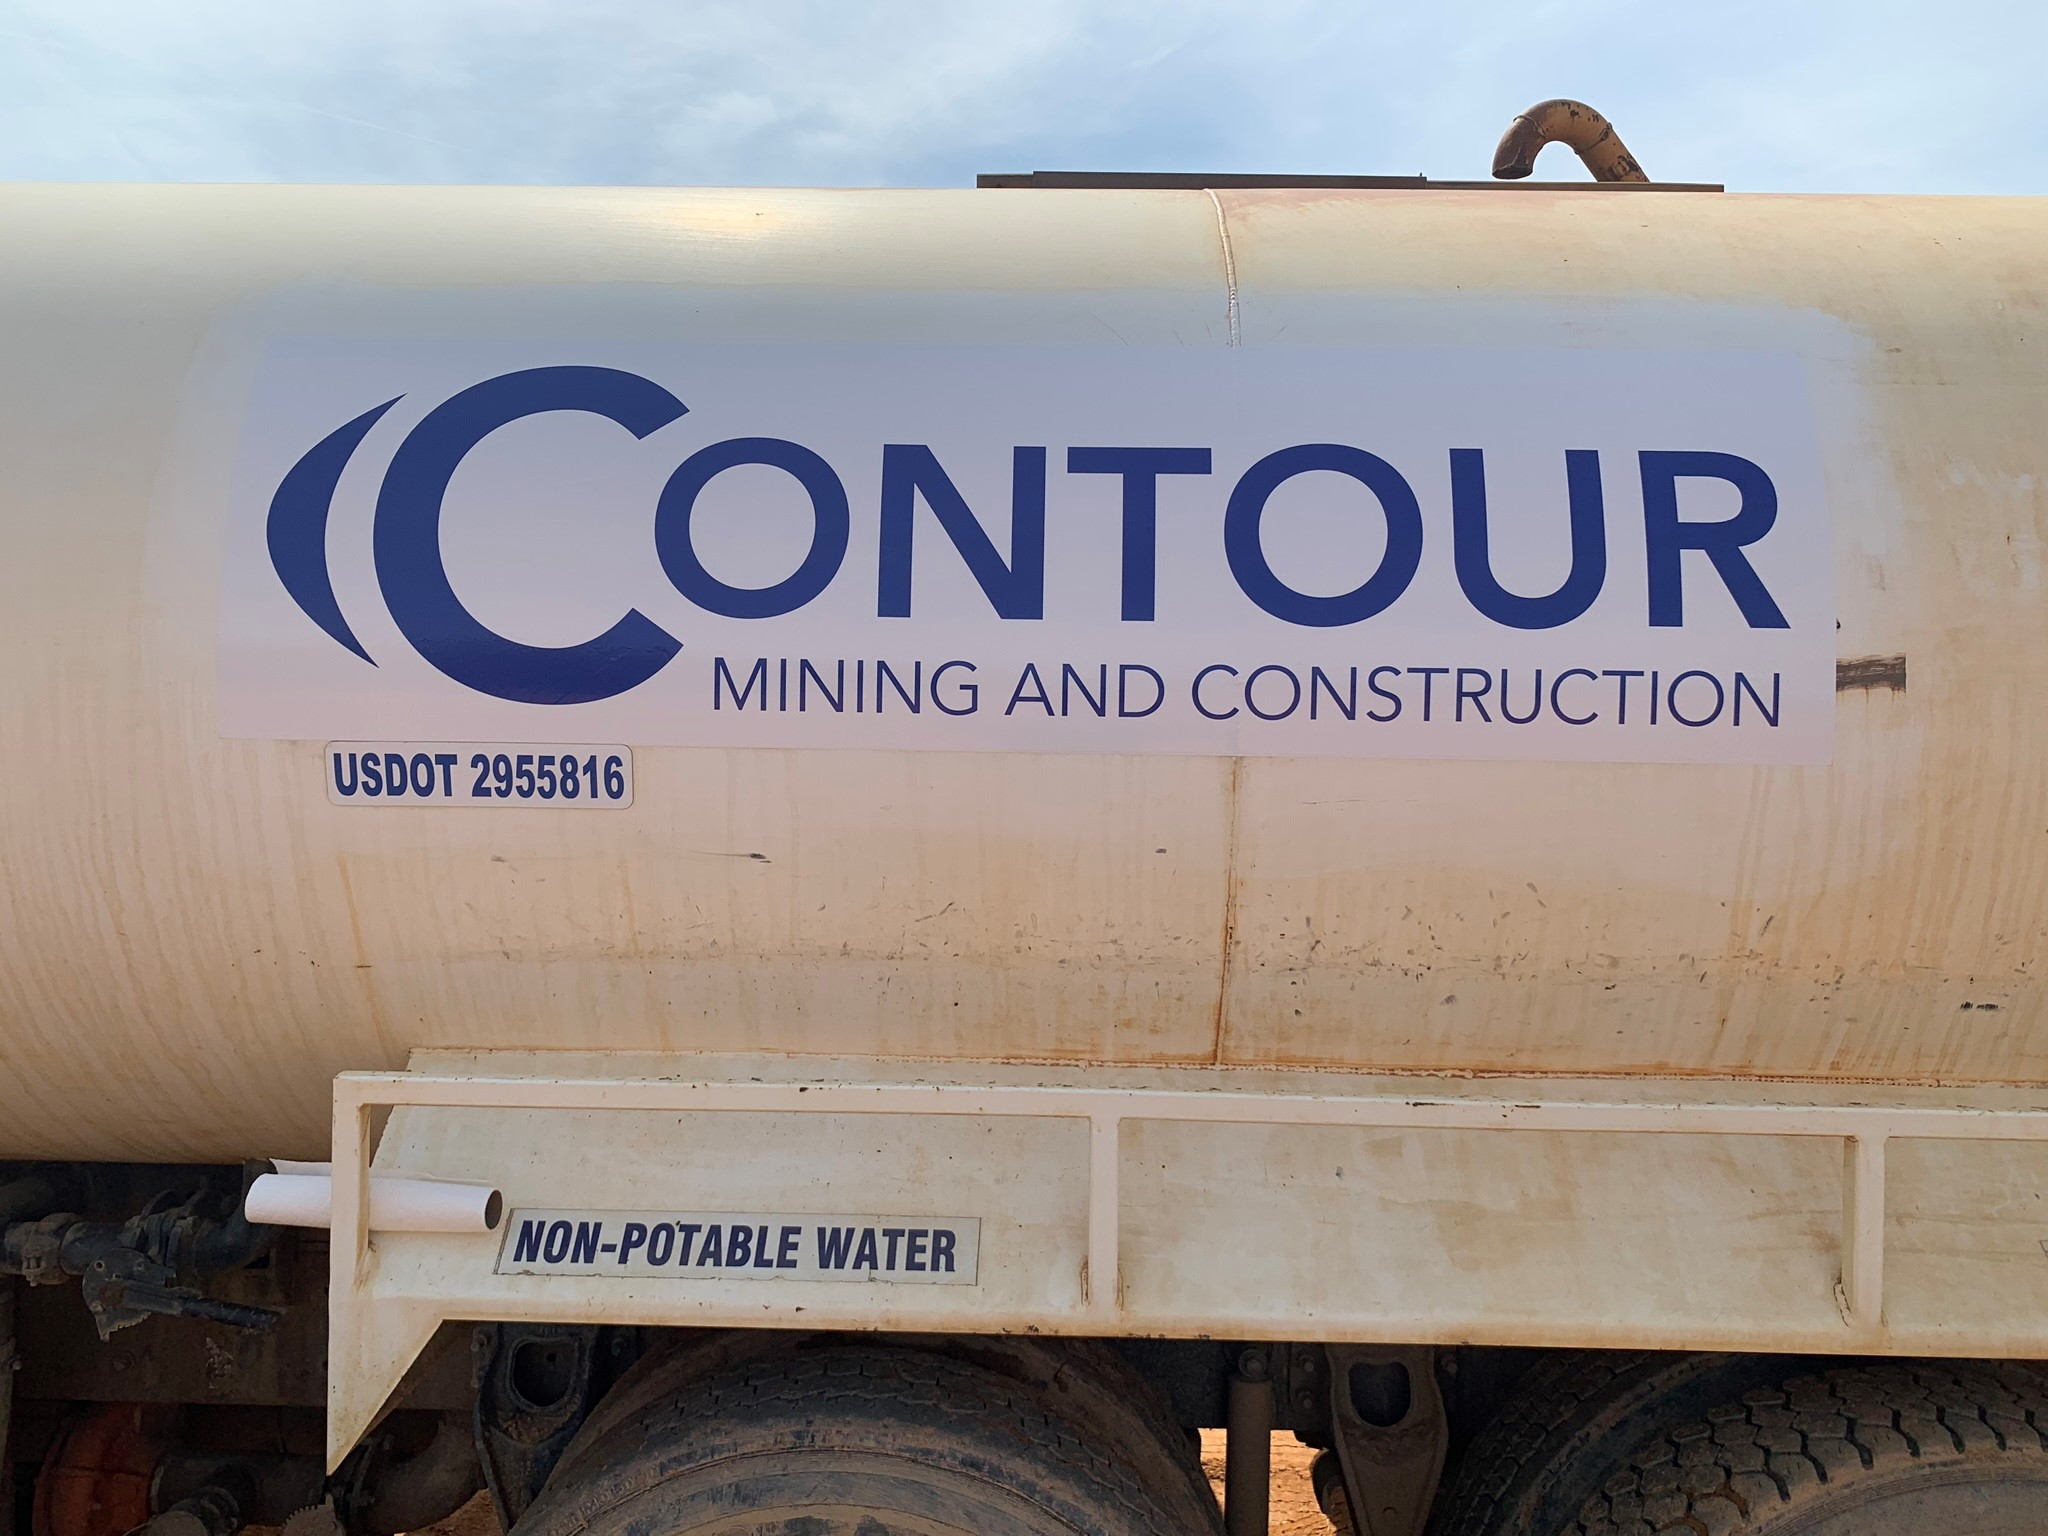 Vehicle Logo Graphics & Lettering | Partial Vehicle Wraps | Builder & Contractor Signs